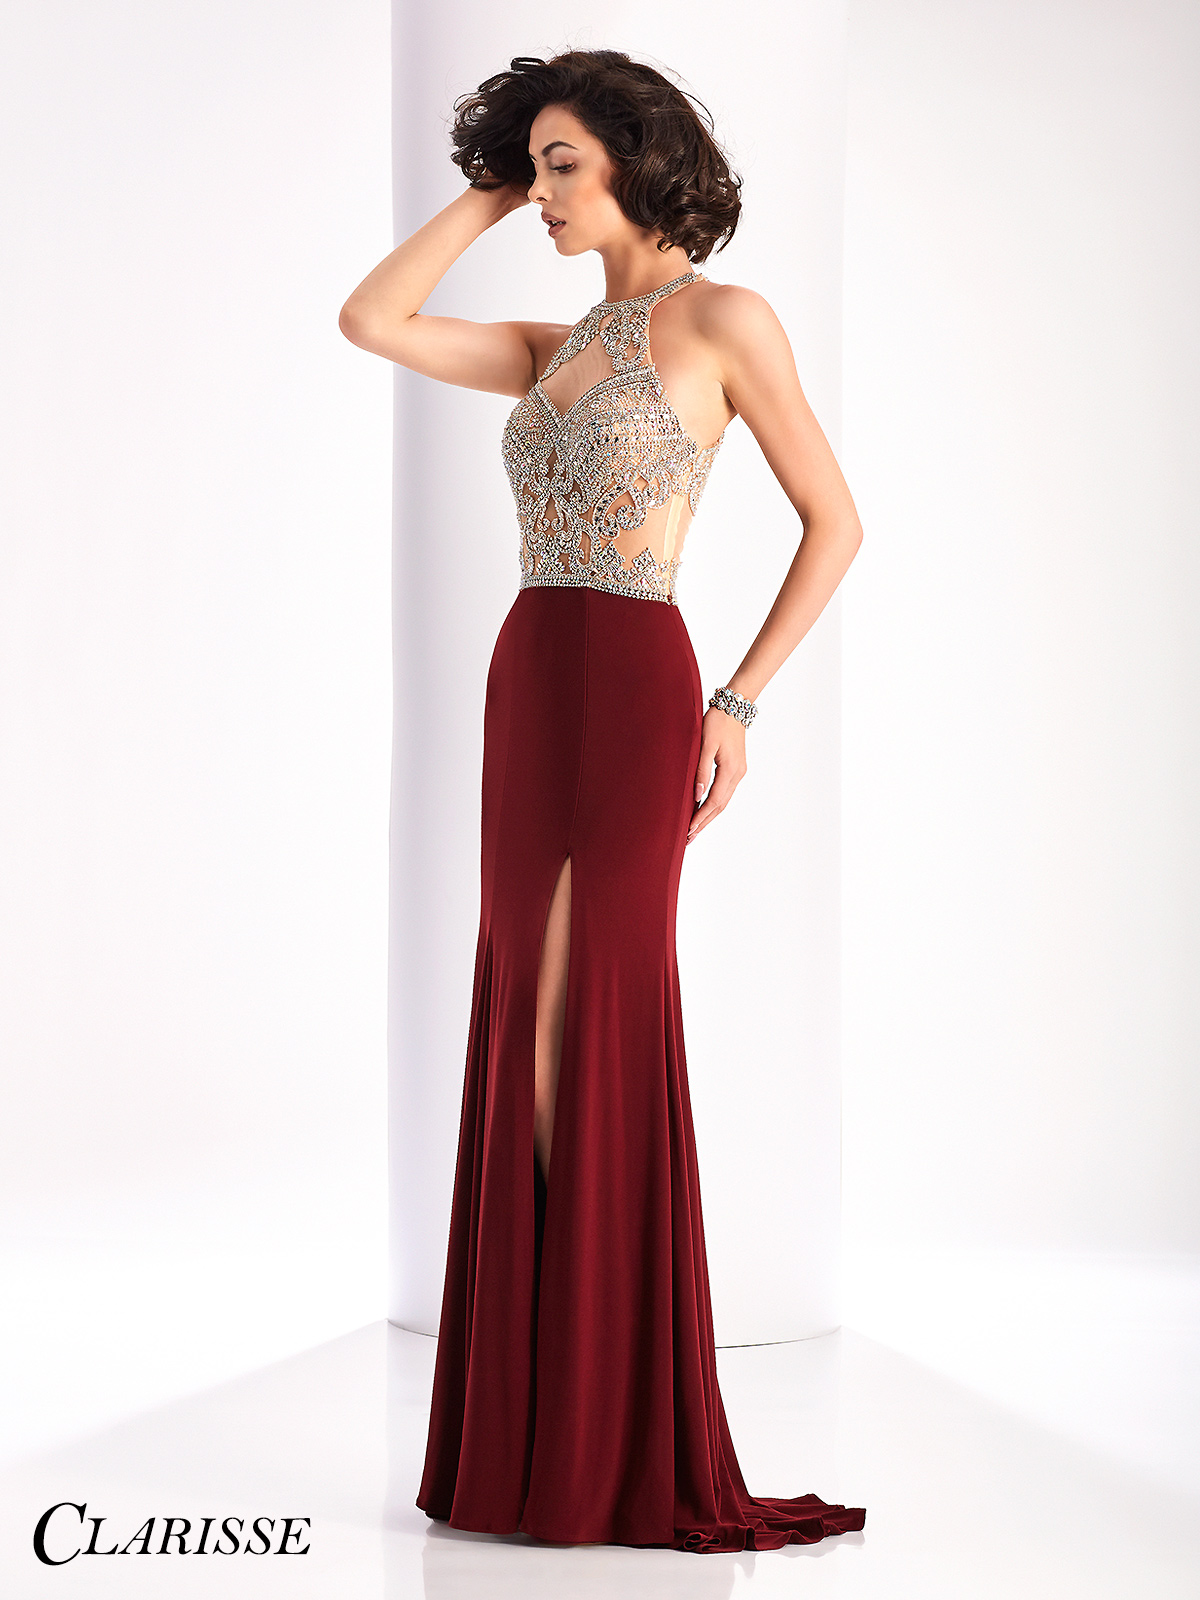 2018 Prom Dress Trends As Seen By Promgirl Promgirl News